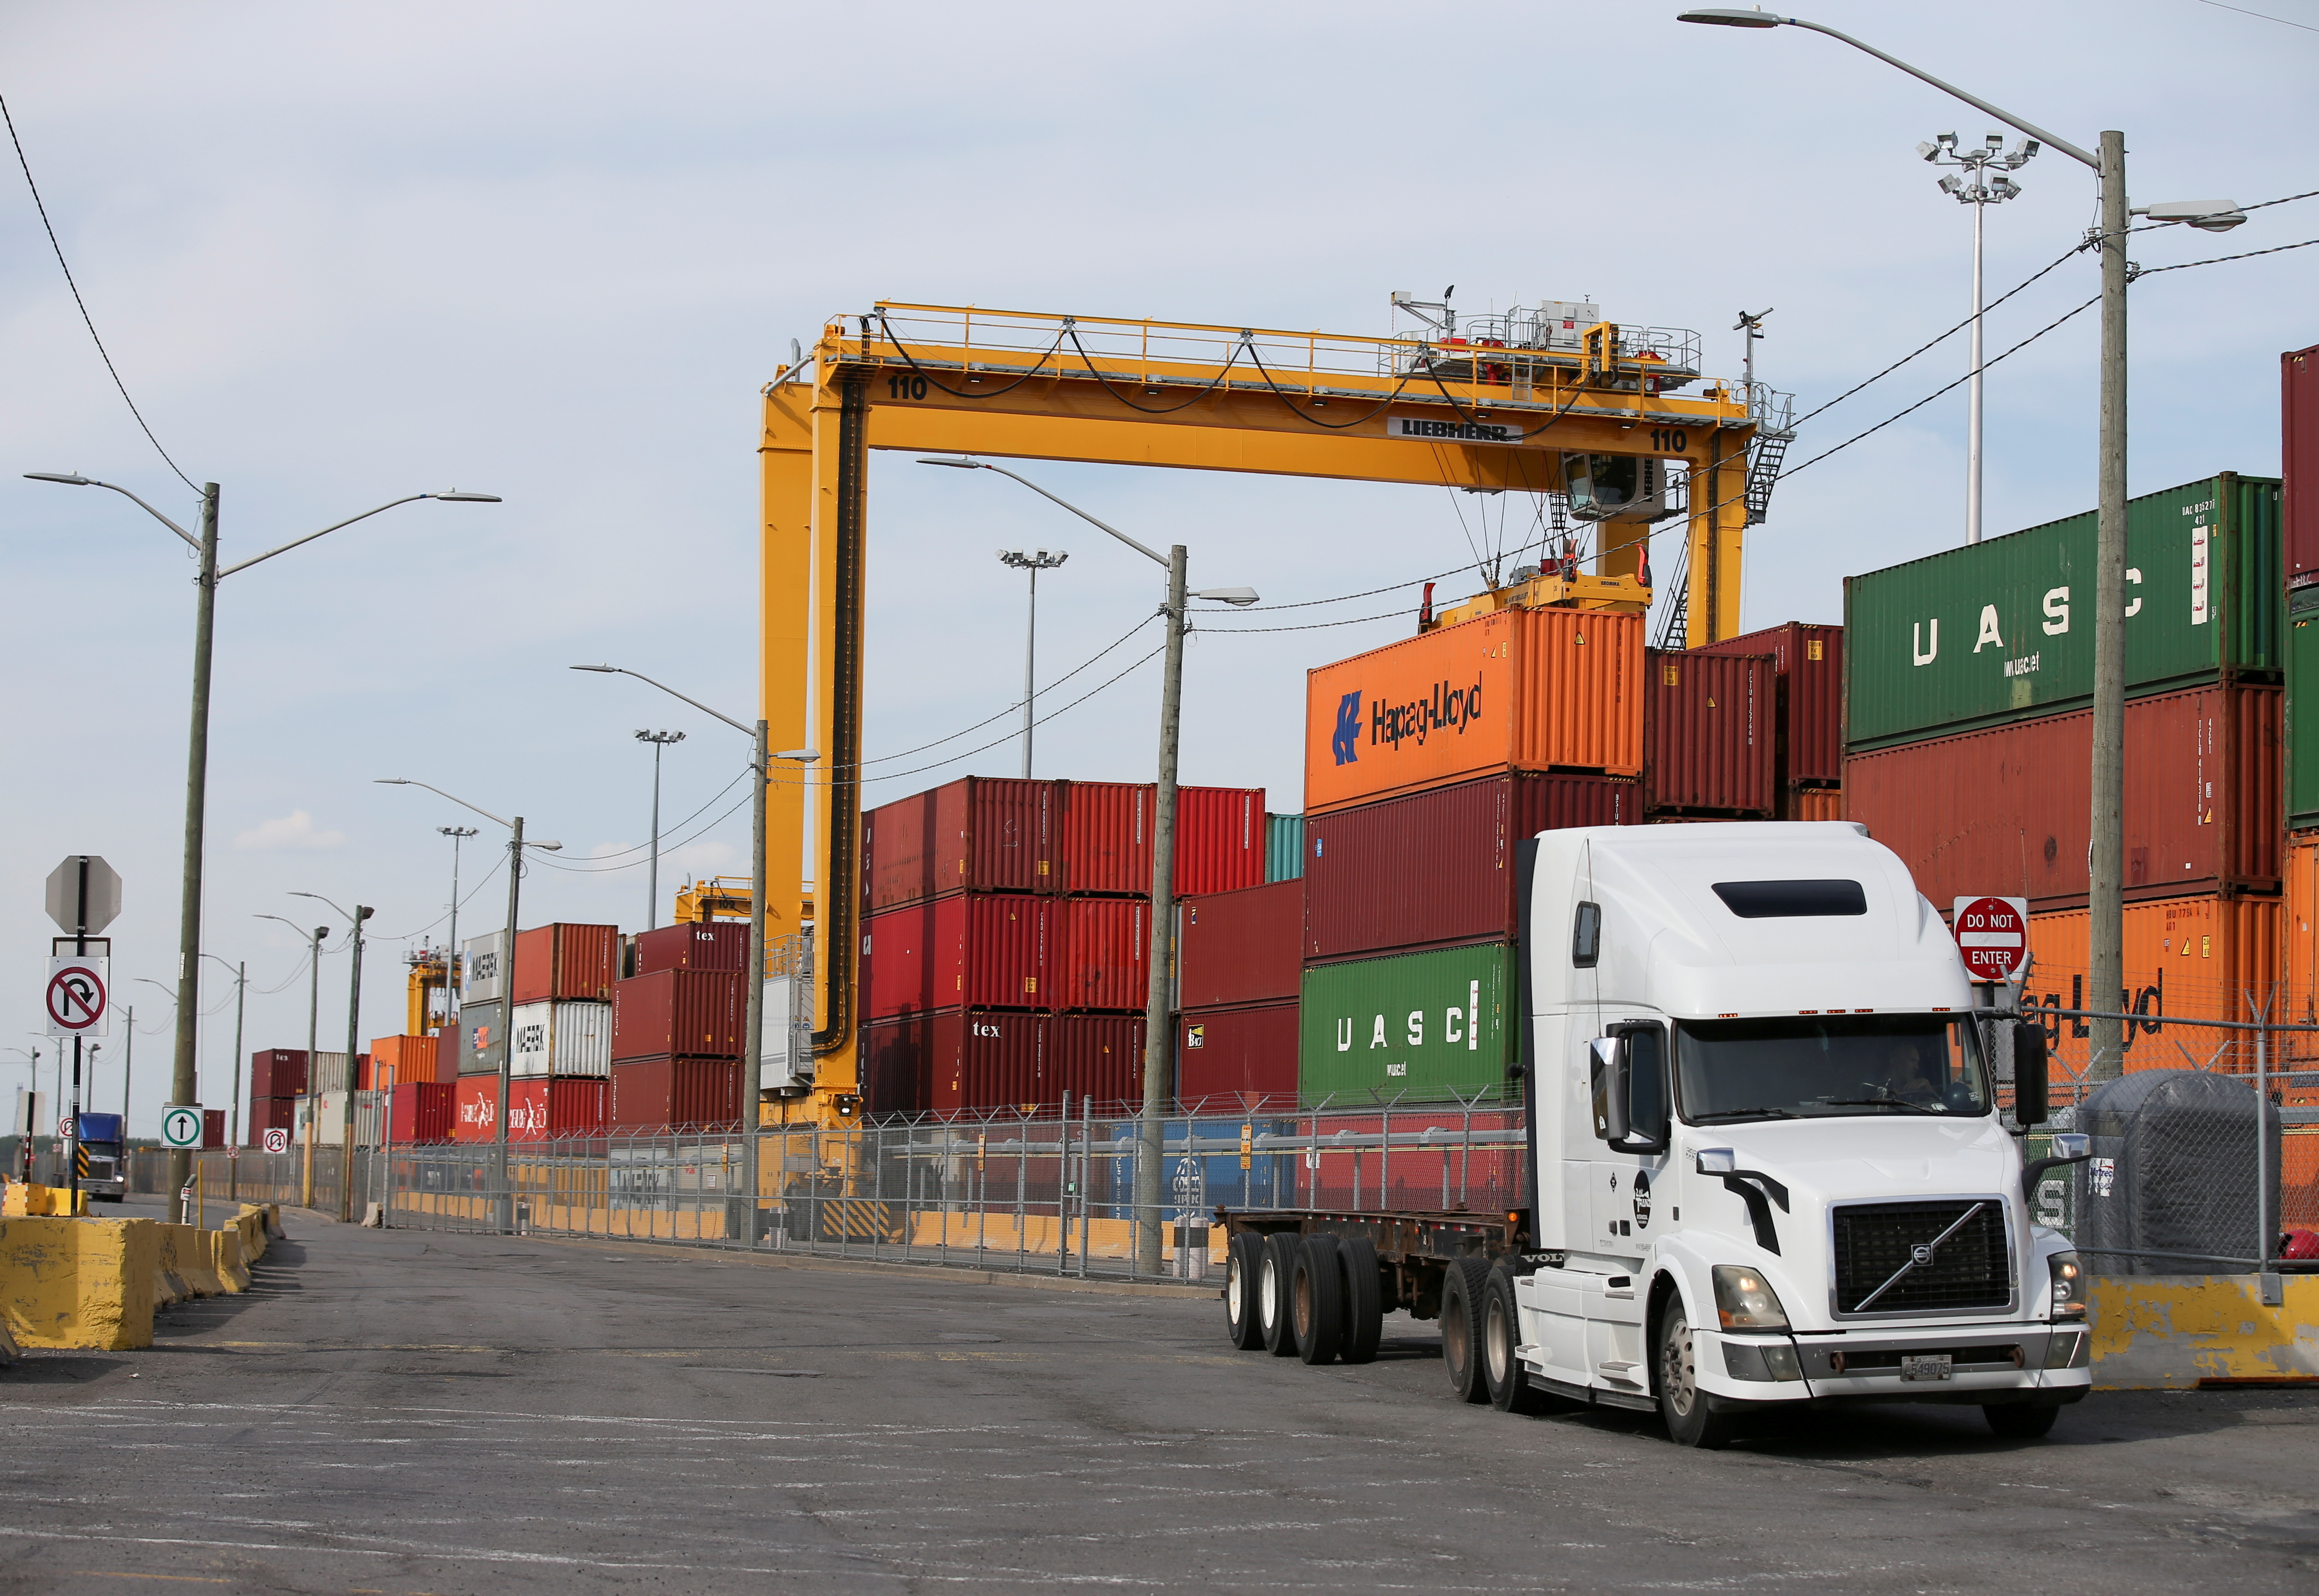 A truck moves past stacked shipping containers at the Port of Montreal in Montreal, Quebec, Canada, May 17, 2021.  REUTERS/Christinne Muschi